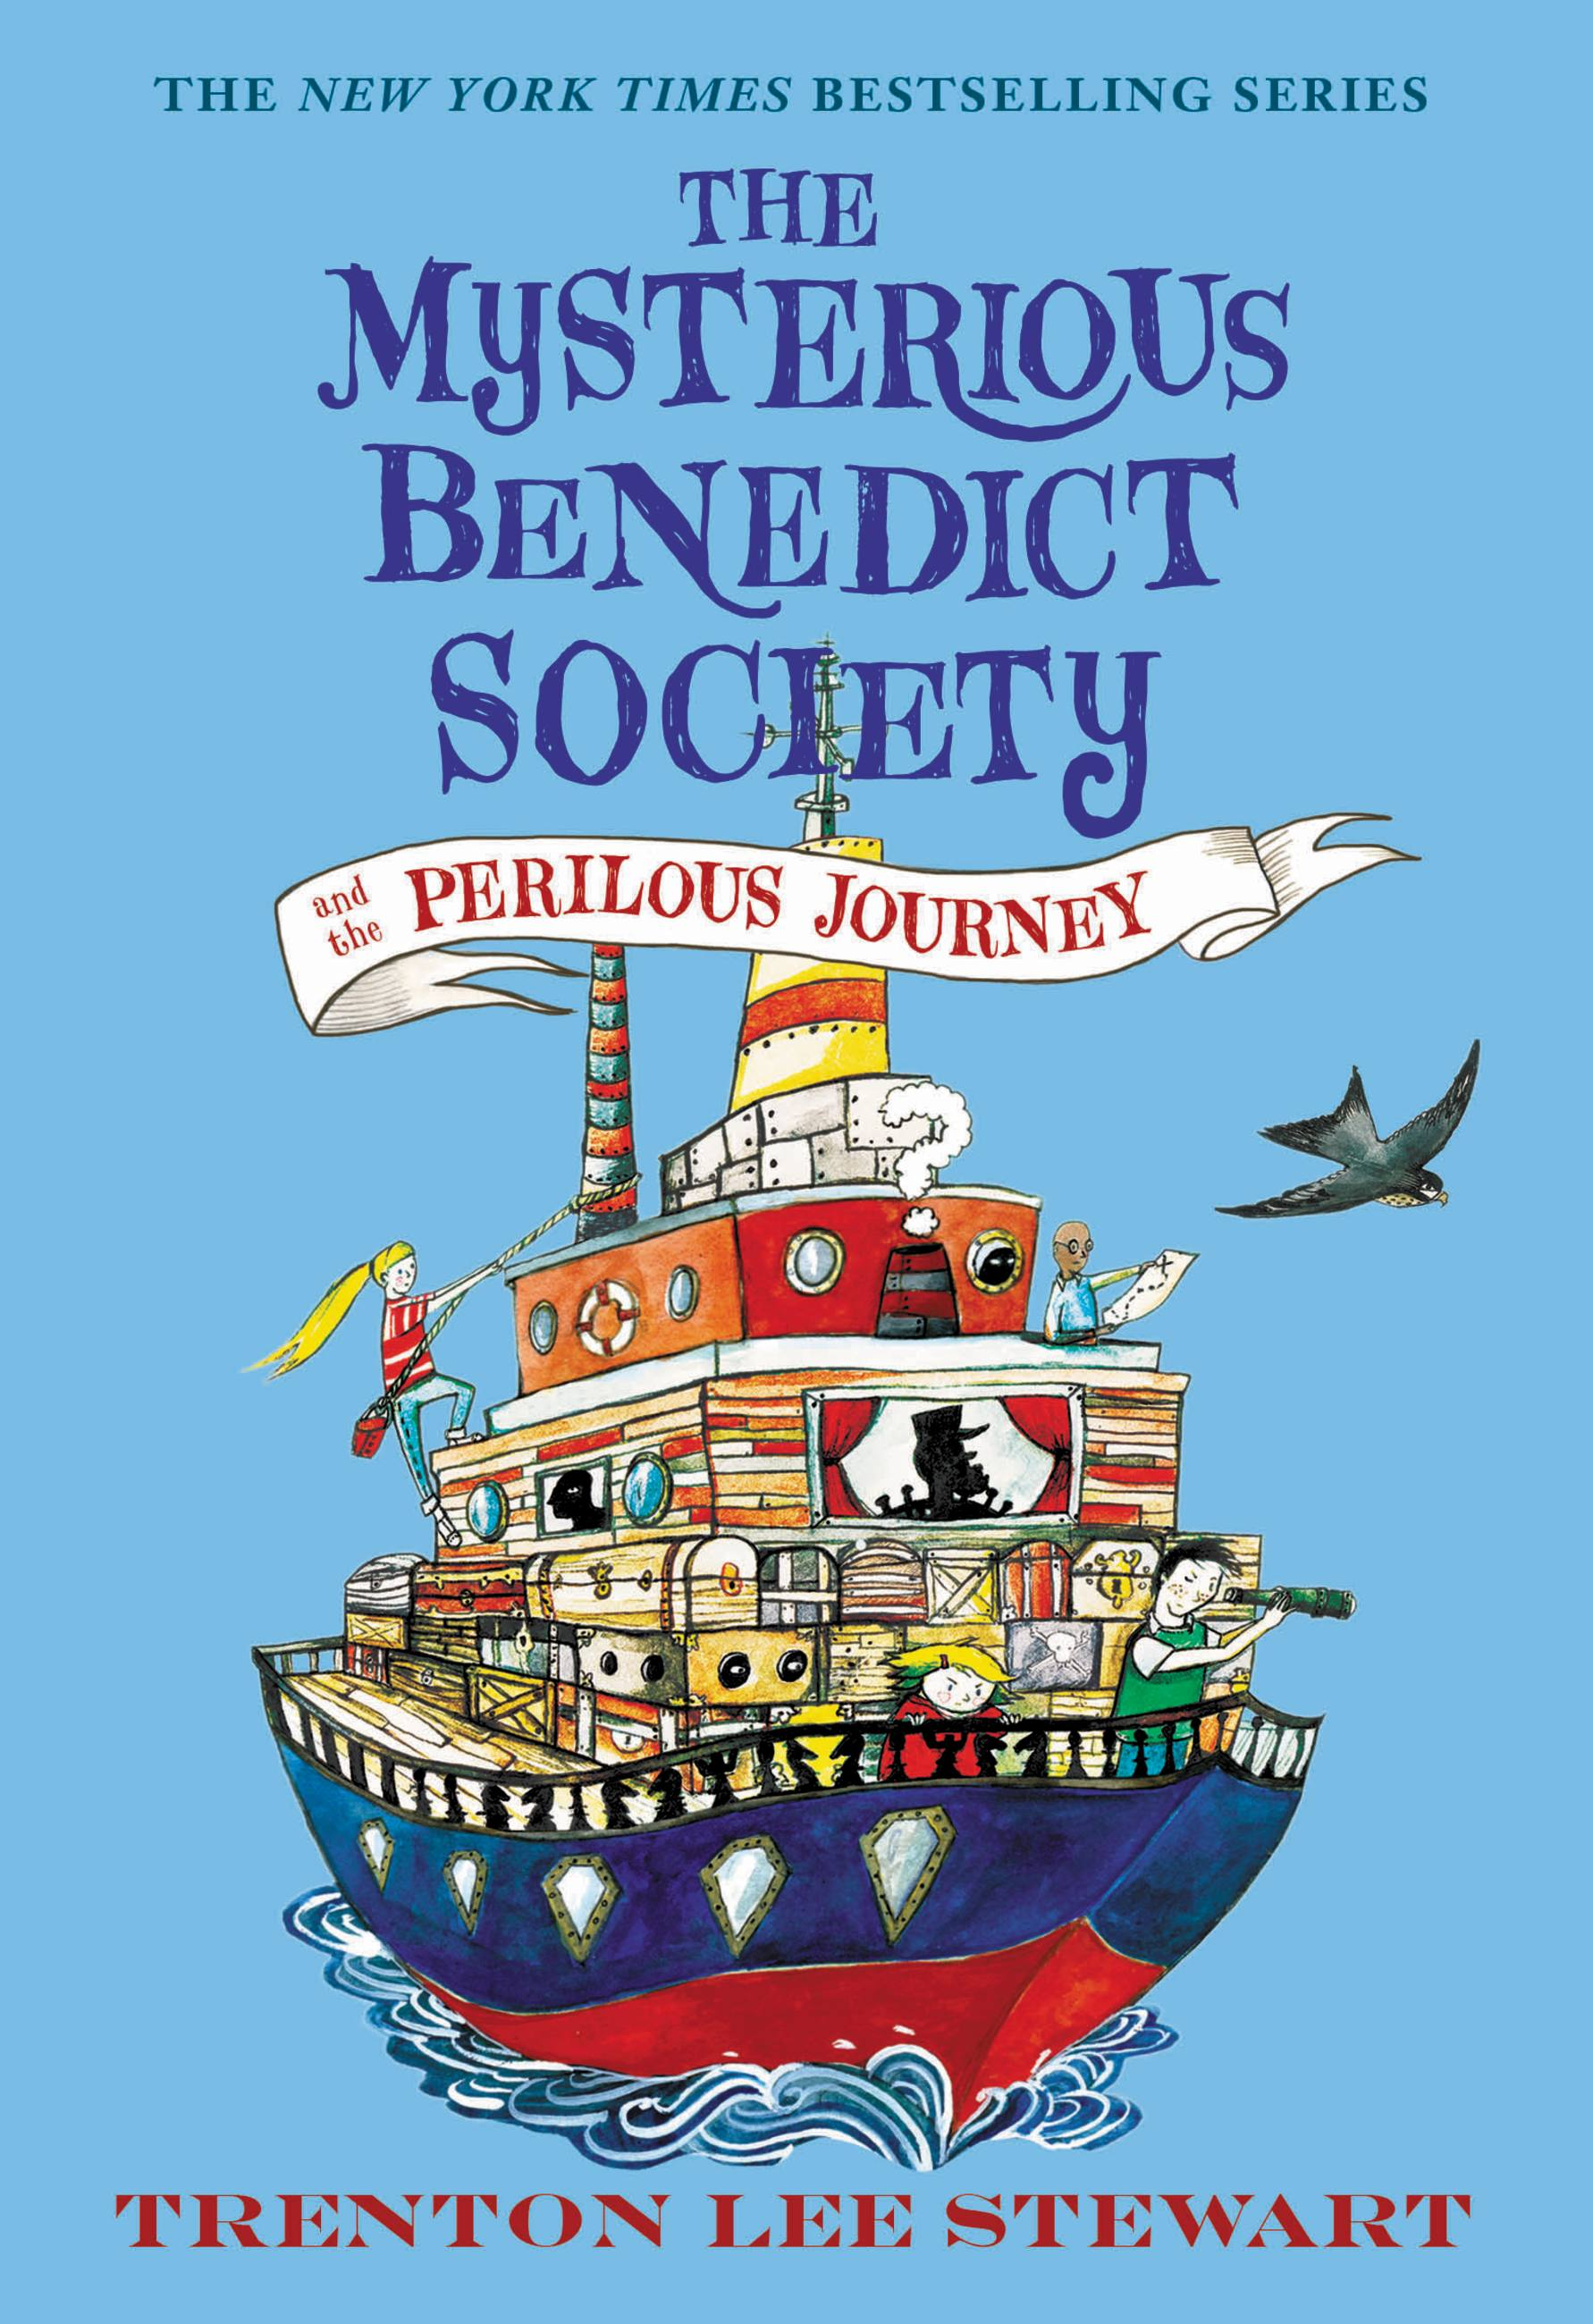 Cover Image of The Mysterious Benedict Society and the Perilous Journey